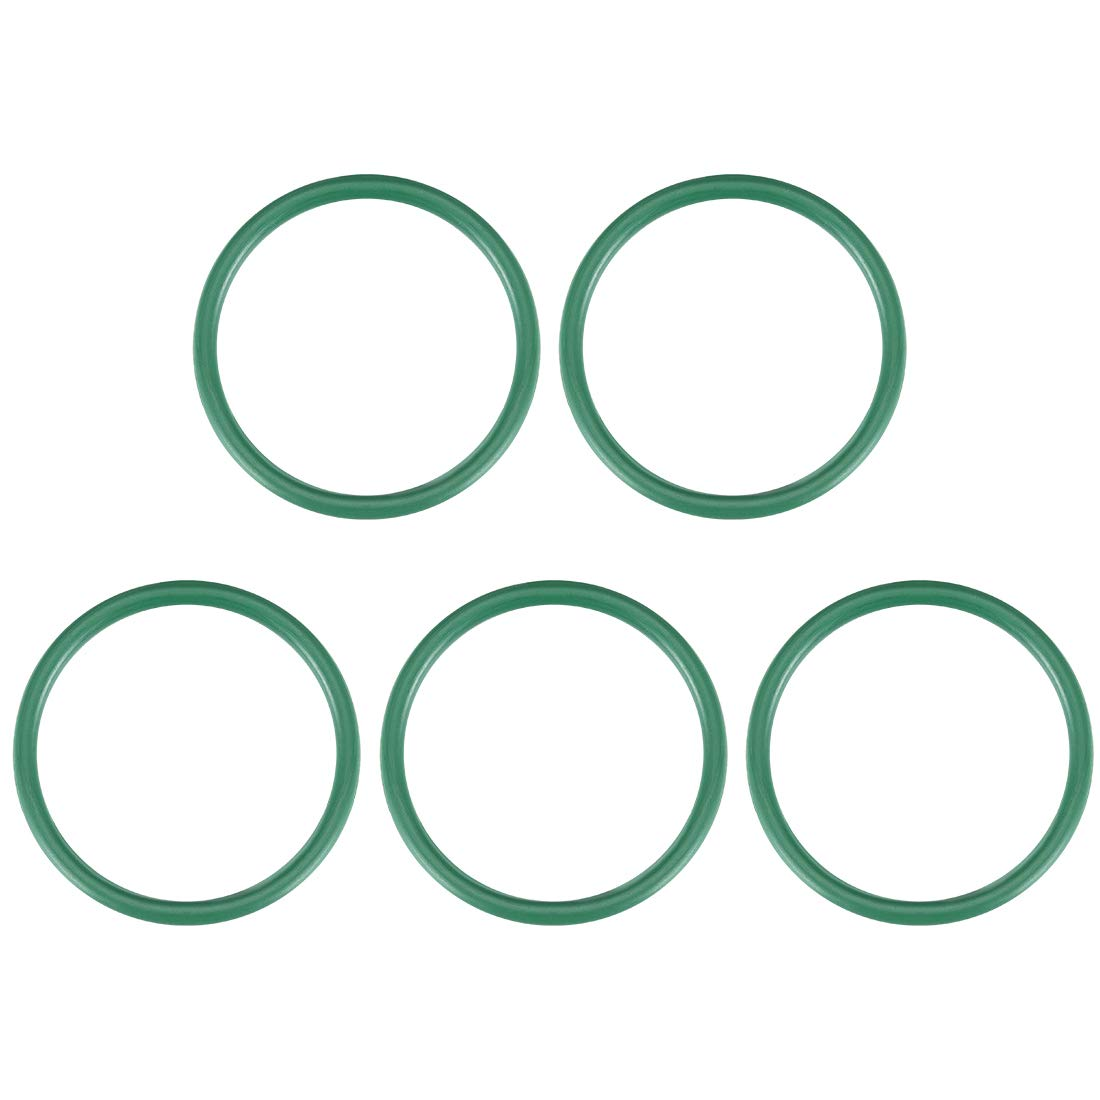 Green 33mm OD 26.8mm ID 3.1mm Width FKM Seal Gasket for Vehicle Machinery Plumbing uxcell Fluorine Rubber O-Rings Pack of 5